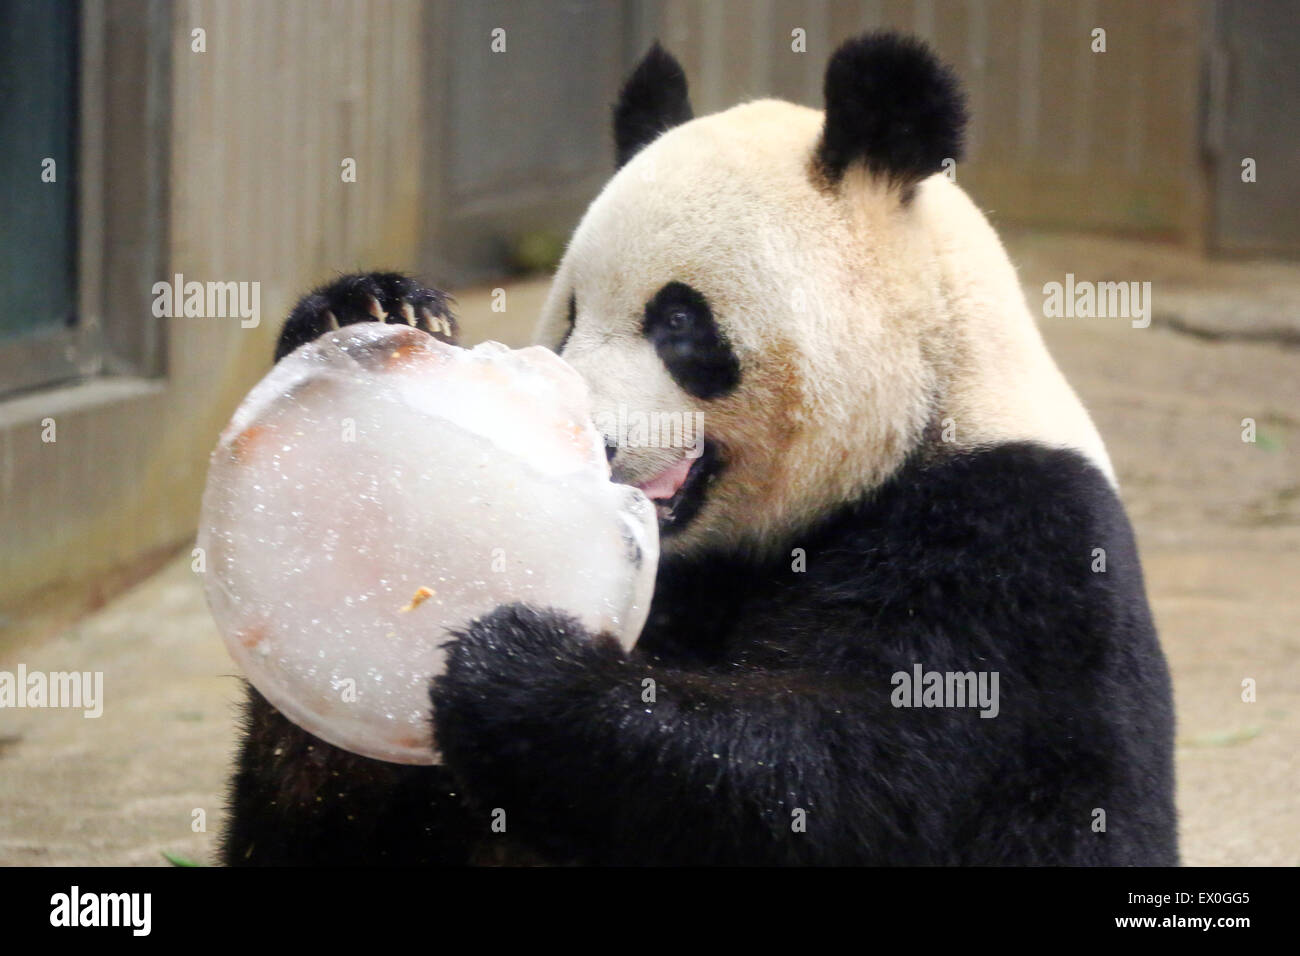 Japan, Tokyo. 3rd July 2015. Sing Sing the Giant Panda celebrated her 10th Birthday in style at Ueno Zoological - Stock Image